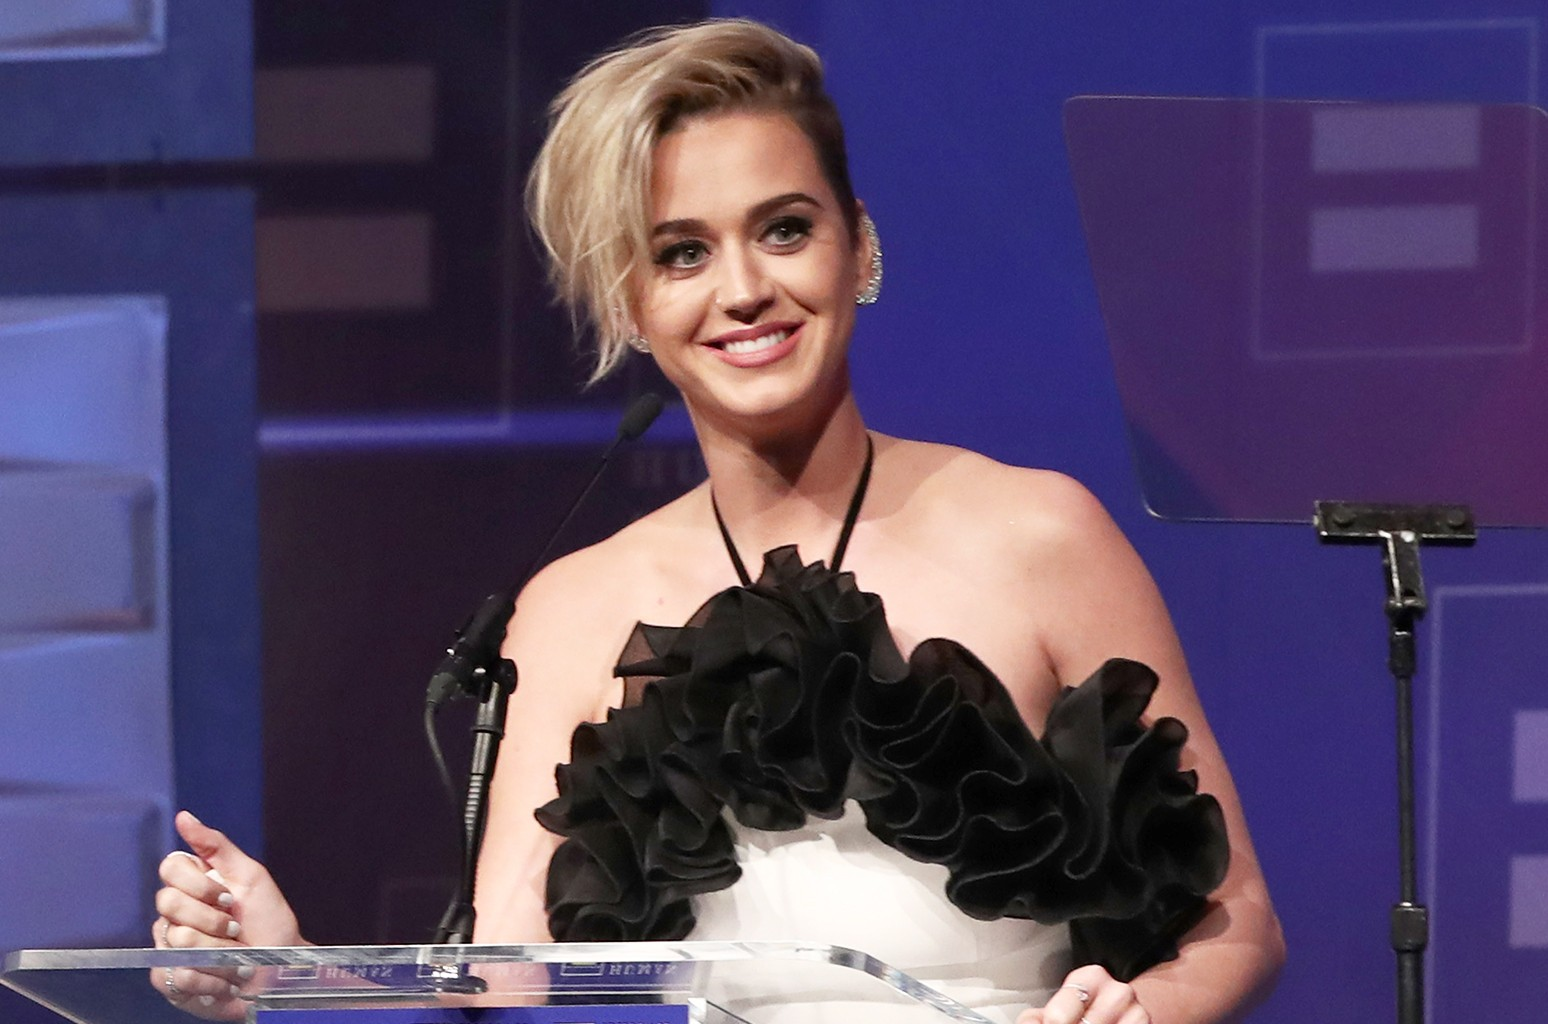 Honoree Katy Perry accepts the HRC National Equality Award onstage the Human Rights Campaign's 2017 Los Angeles Gala Dinner at JW Marriott Los Angeles at L.A. LIVE on March 18, 2017 in Los Angeles.